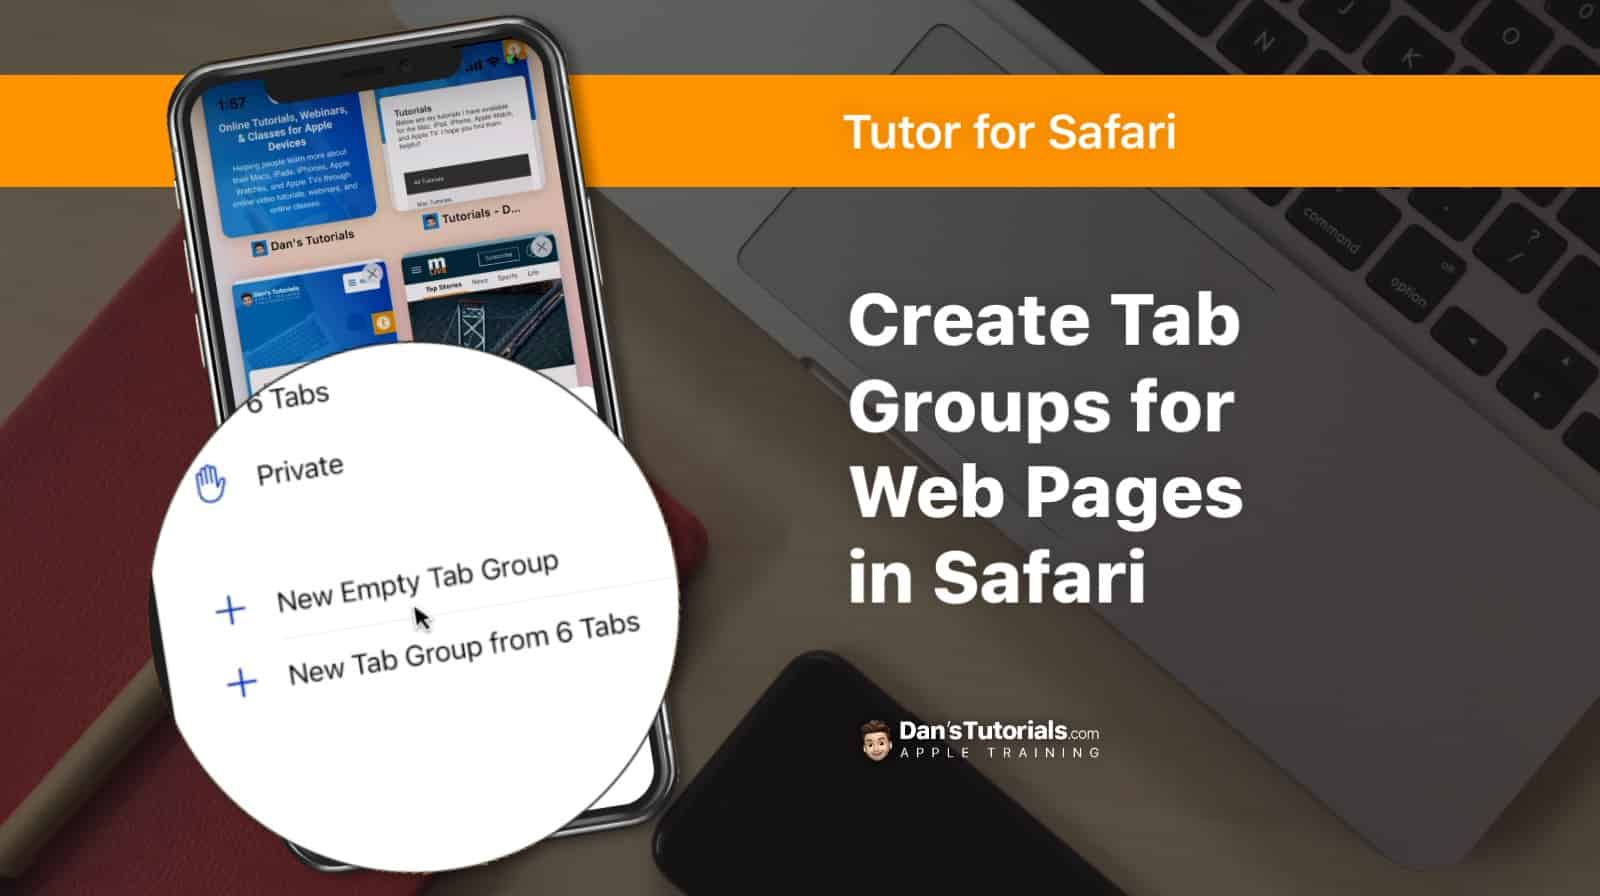 Create Tab Groups for Web Pages in Safari on the iPhone